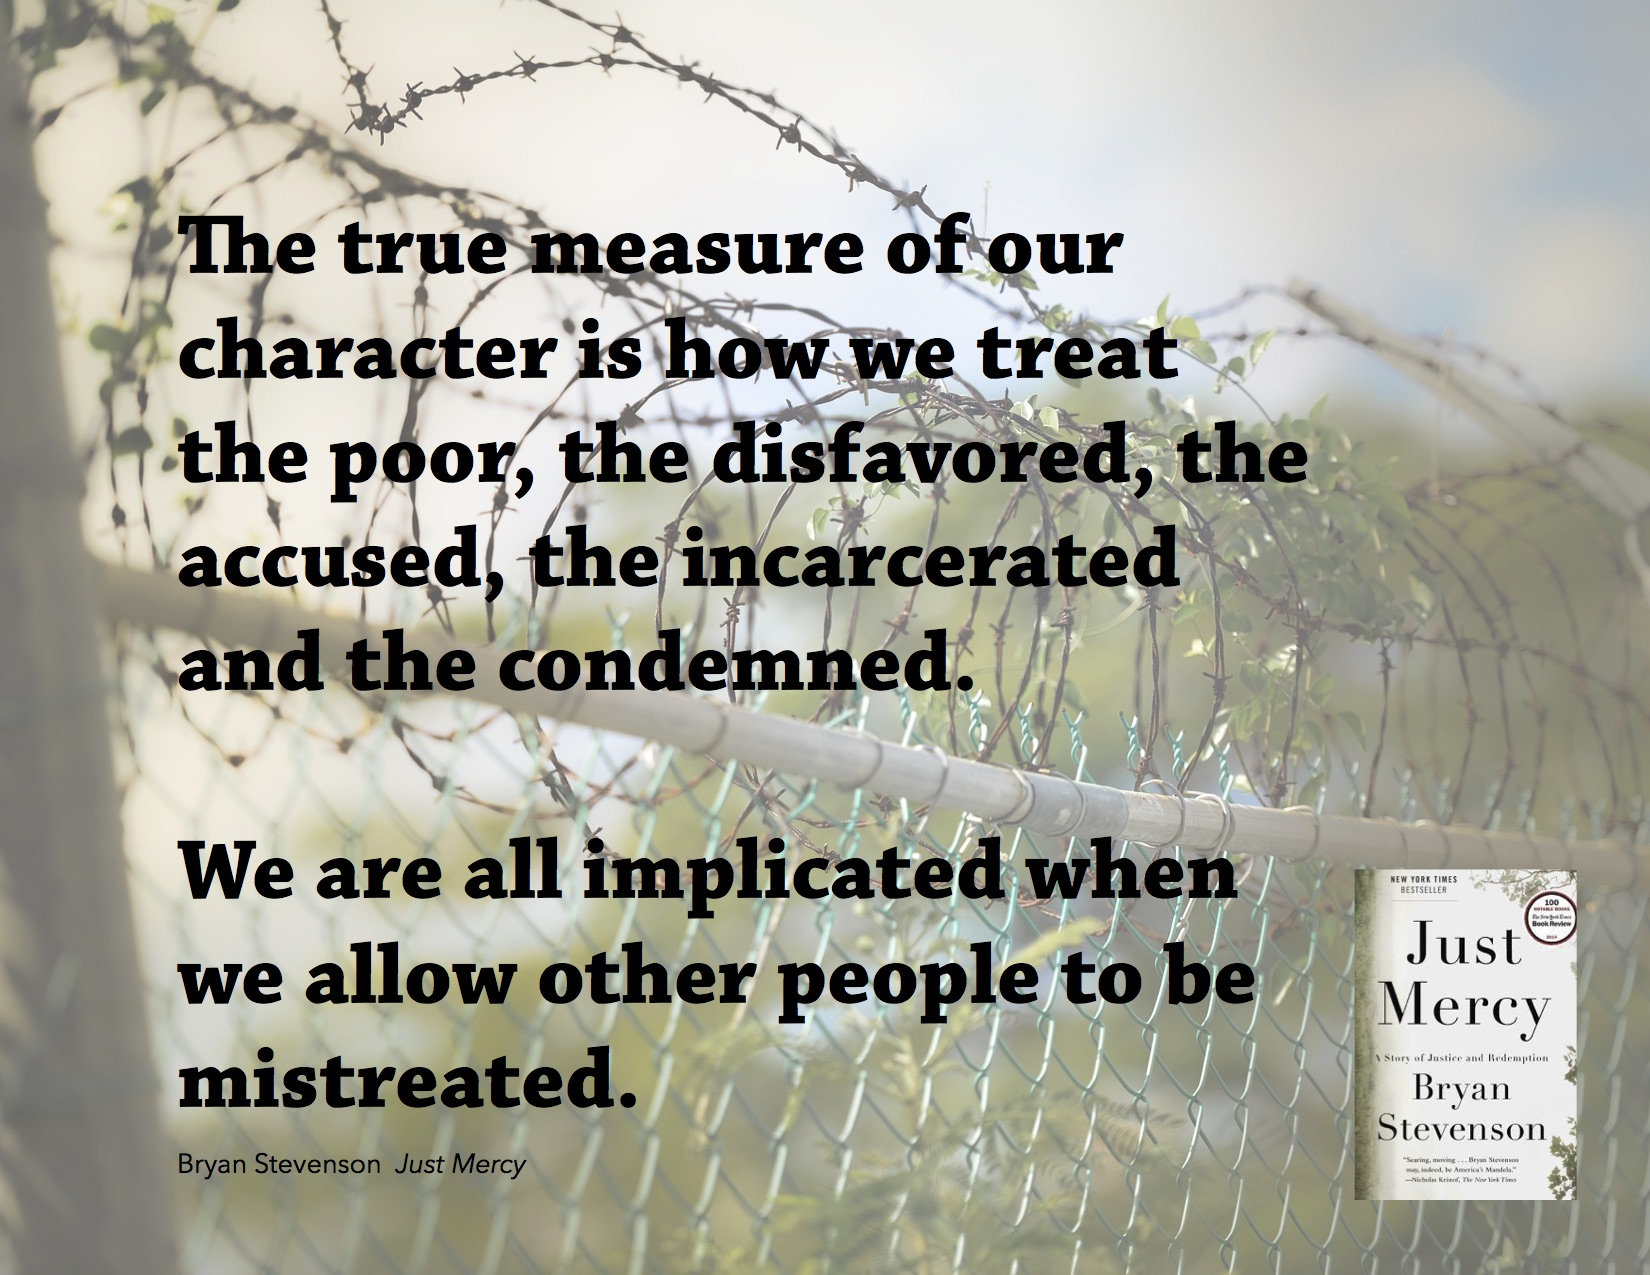 """The true measure of our character is how we treat the poor, the disfavored, the accused, the incarcerated, and the condemned. We are all implicated when we allow other people to be mistreated."" - Bryan Stevenson, Just Mercy"